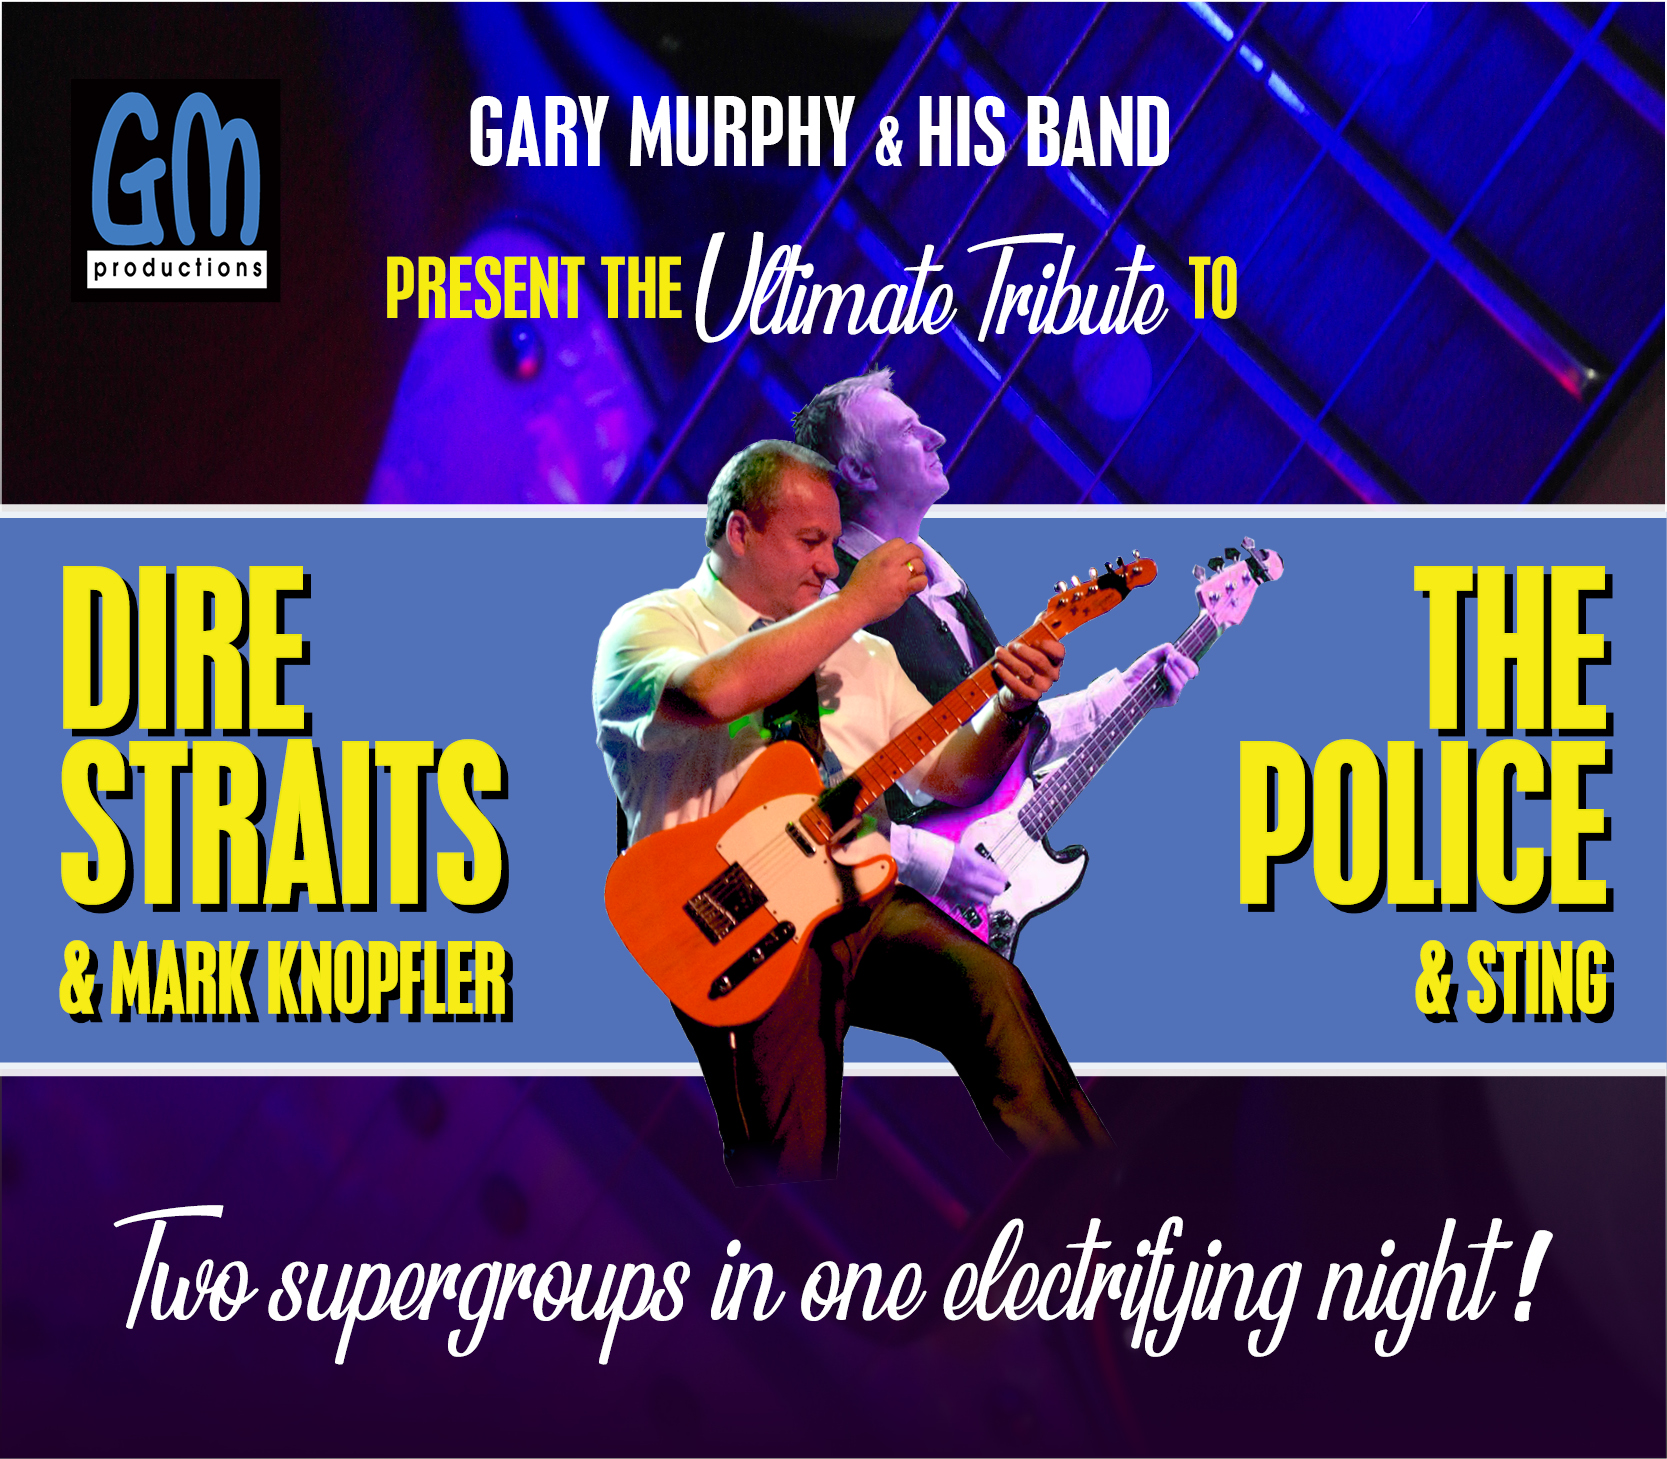 Saturday 1st May 2021, 7:30pmRescheduled from Sun 28th Feb 2021All Tickets £21.50Two supergroups in one electrifying night!Gary Murphy and his multi-talented band return to the Floral Pavilion Theatre with the Ultimate Tribute to two supergroups Dire Straits & Mark Knopfler and The Police & Sting The show features all the greatest hits from both groups including Money for Nothing, Message In A Bottle, Sultans of Swing, Roxanne, Walk of Life, Every Breath You Take and many more...Featuring Gary Murphy as Mark Knopfler, Rob Shirley as Sting and Adam Goldberg as Stuart Copeland. Gary Murphy is regarded as one of the finest guitarists in the UK and this show will be a night to remember and is not to be missed.All prices advertised include a booking fee. No fees to Friends of the Floral. A postage fee may apply.